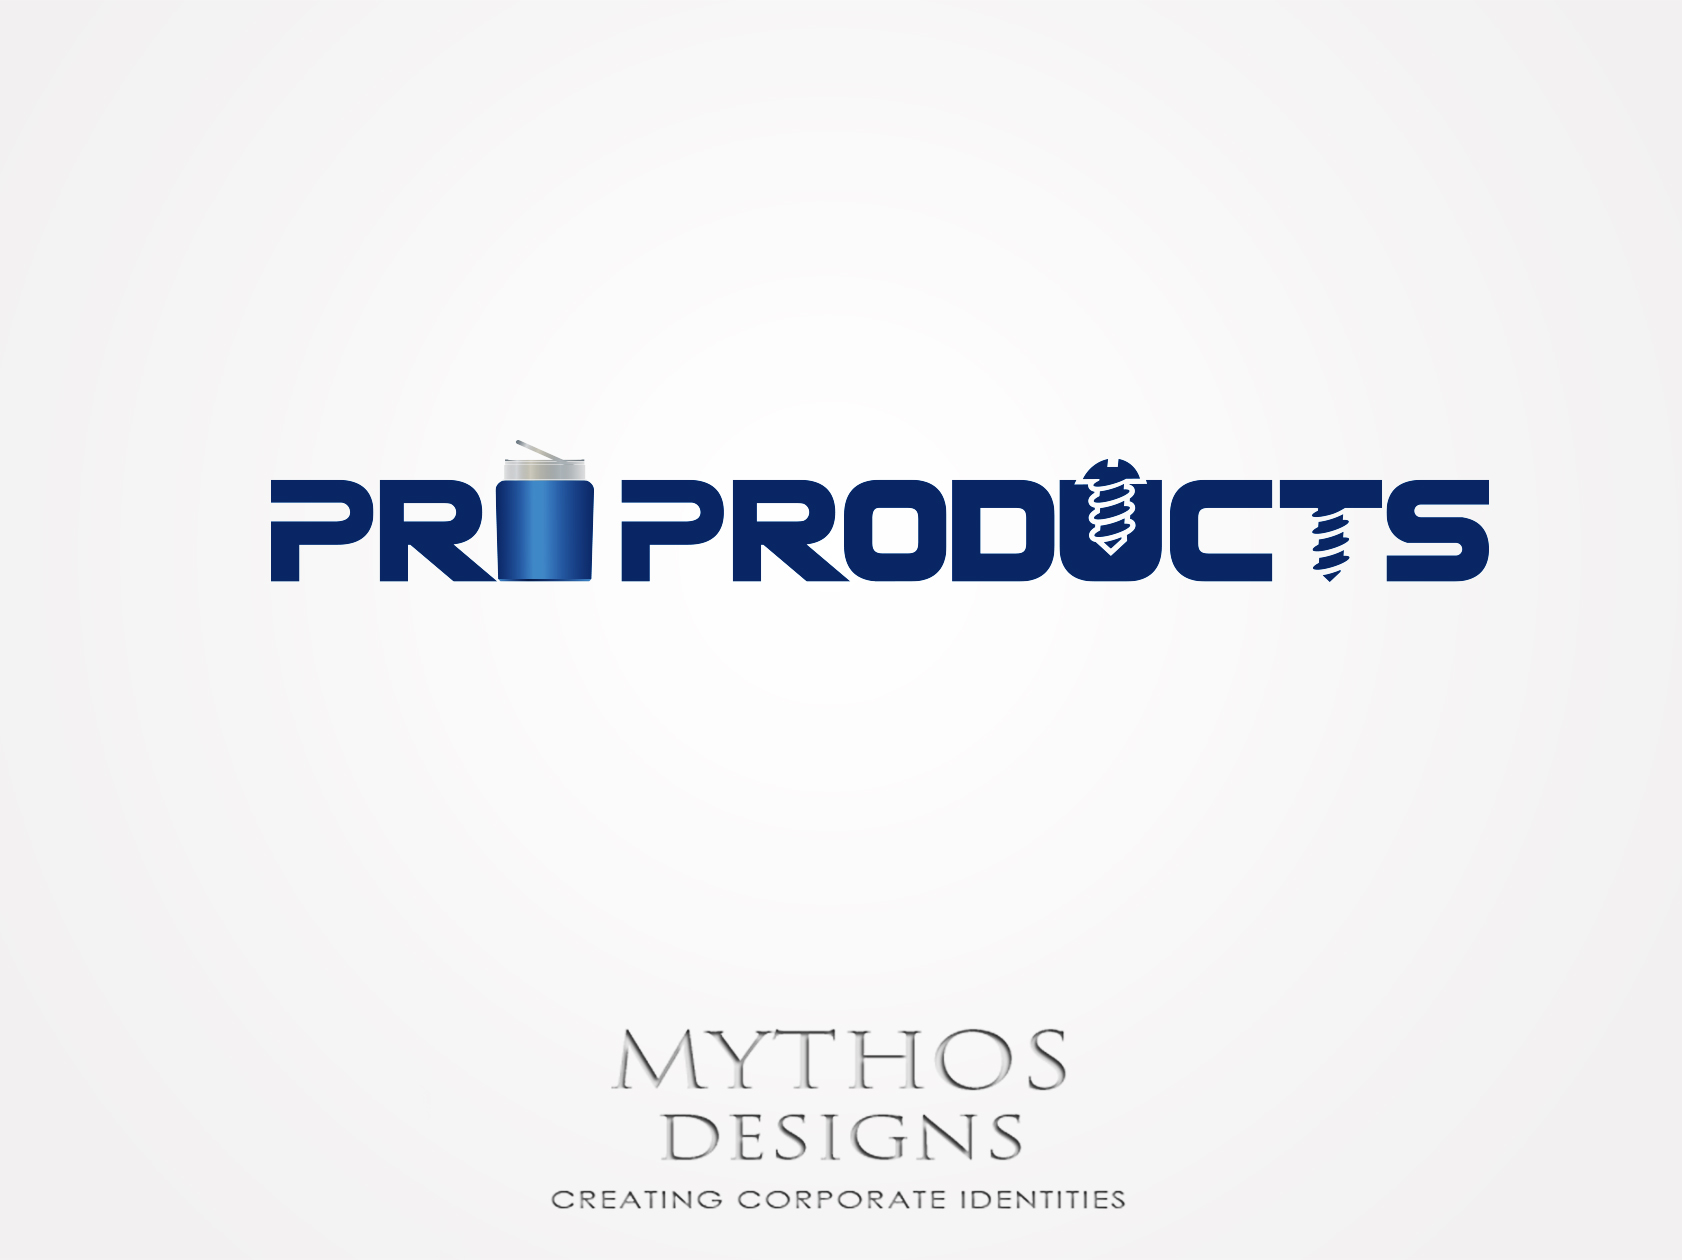 Logo Design by Mythos Designs - Entry No. 35 in the Logo Design Contest Fun yet Professional Logo Design for ProProducts.